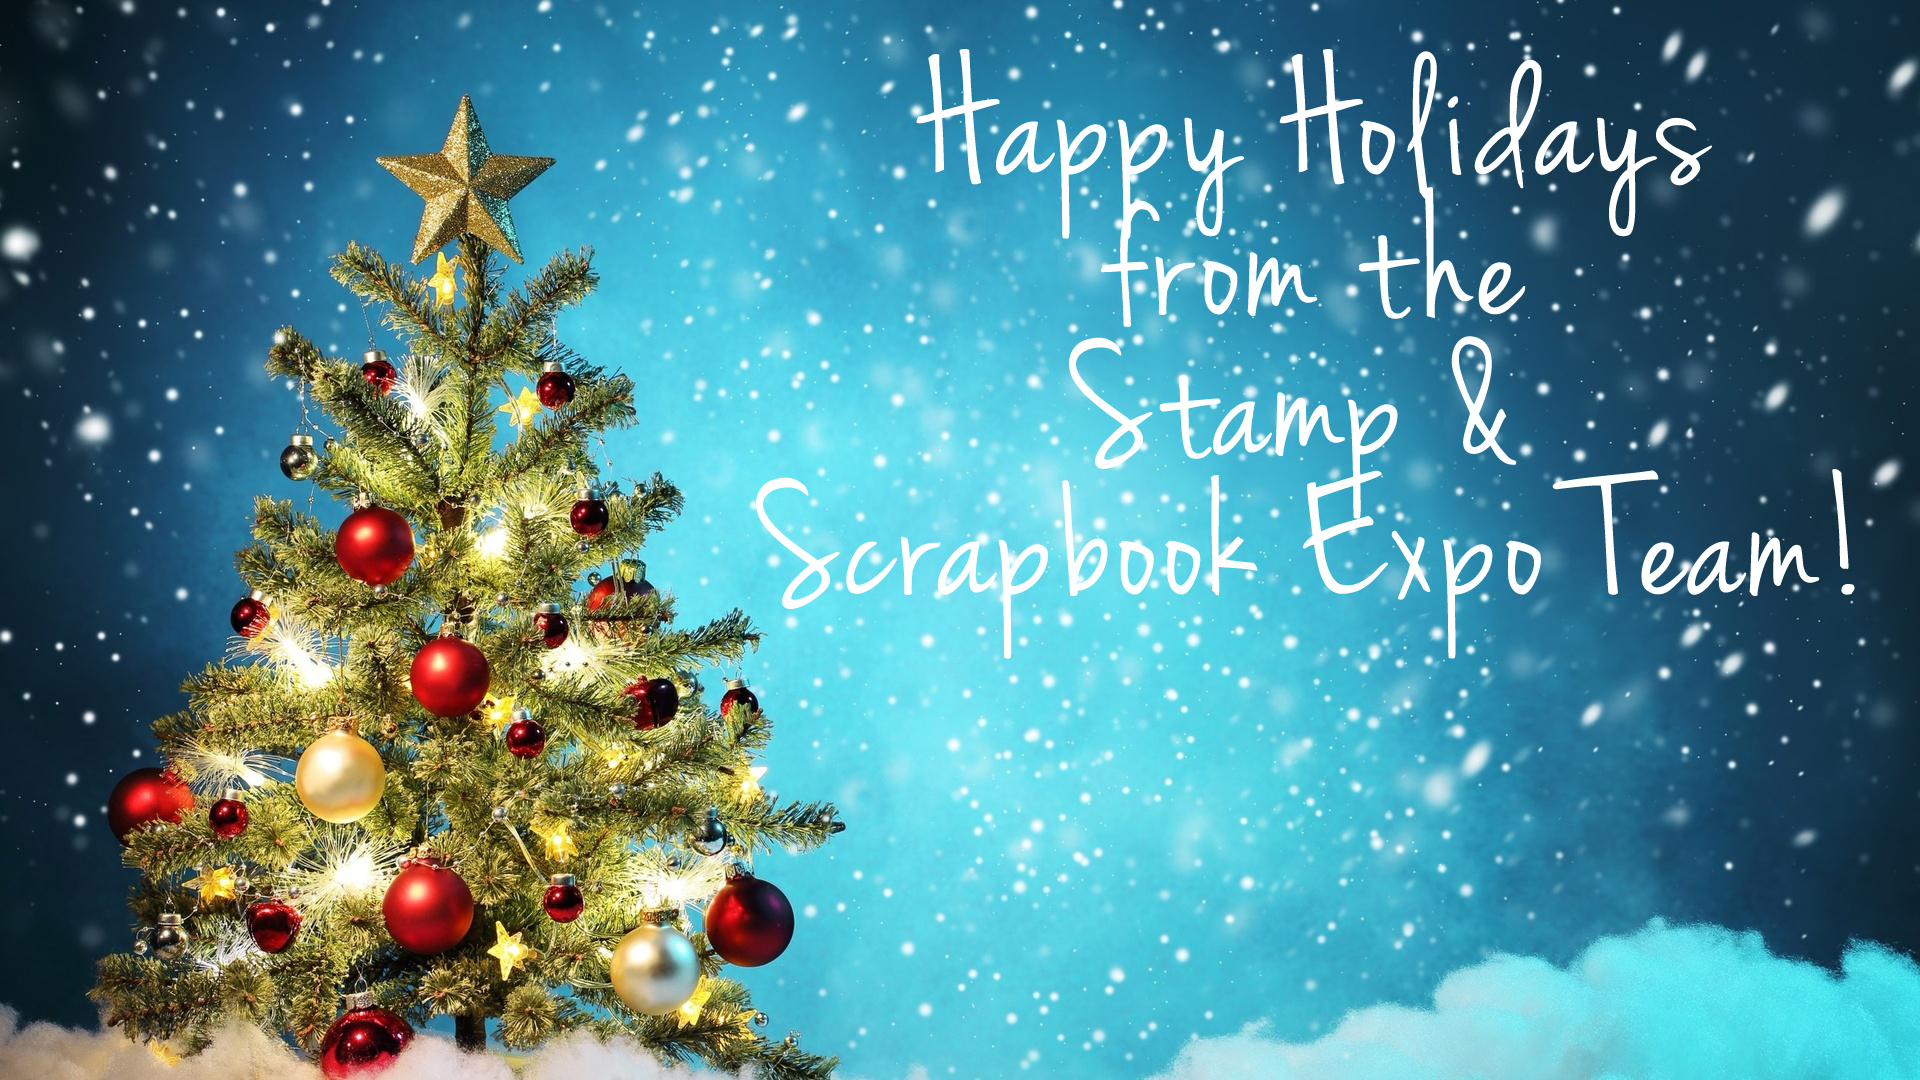 Weekly scrapper page 43 of 452 stamp scrapbook expo happy holidays seasons greetings kristyandbryce Choice Image